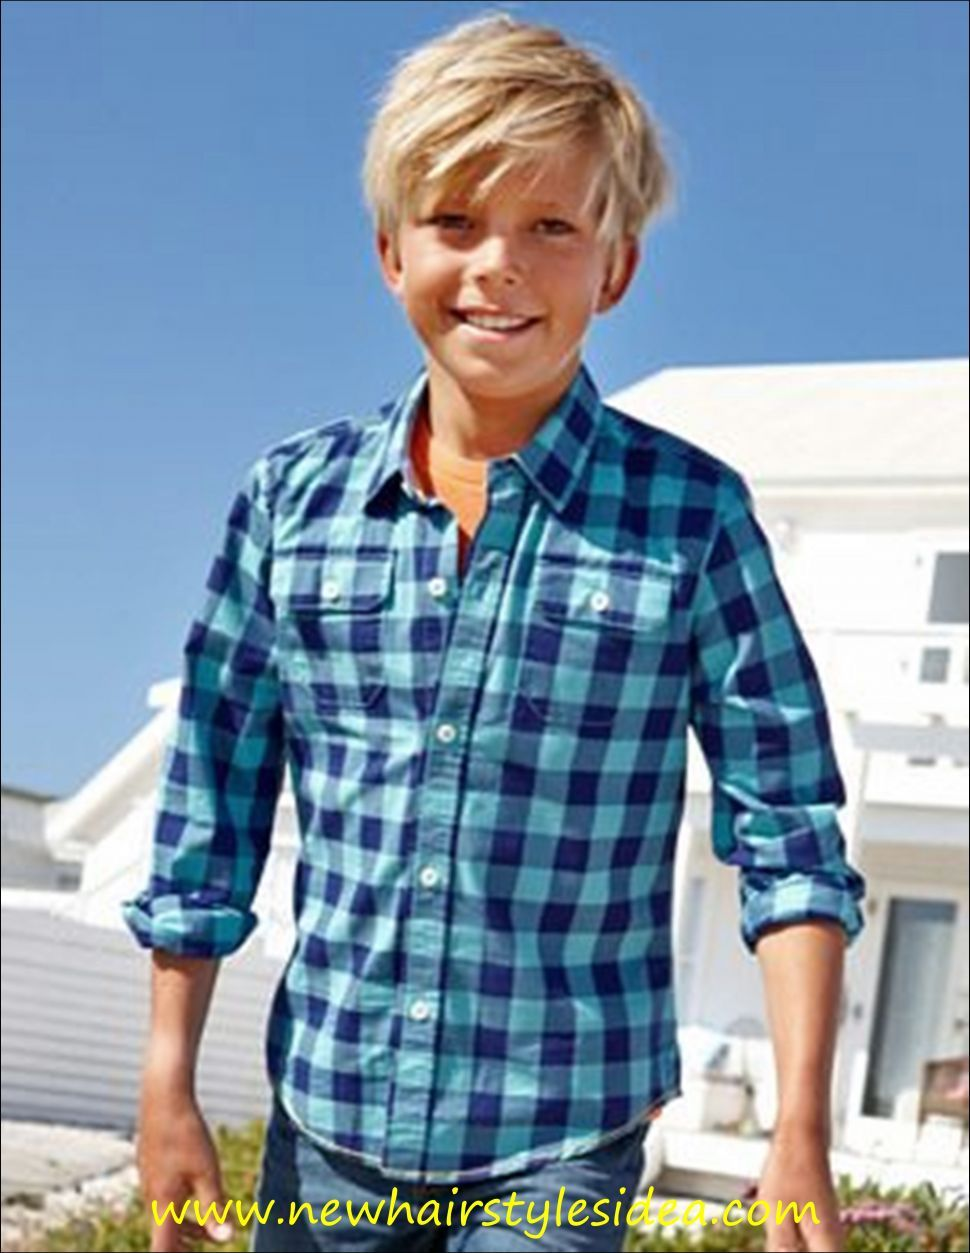 Pin by Sonia Chater on Max hair in 11  Boy hairstyles, Boys